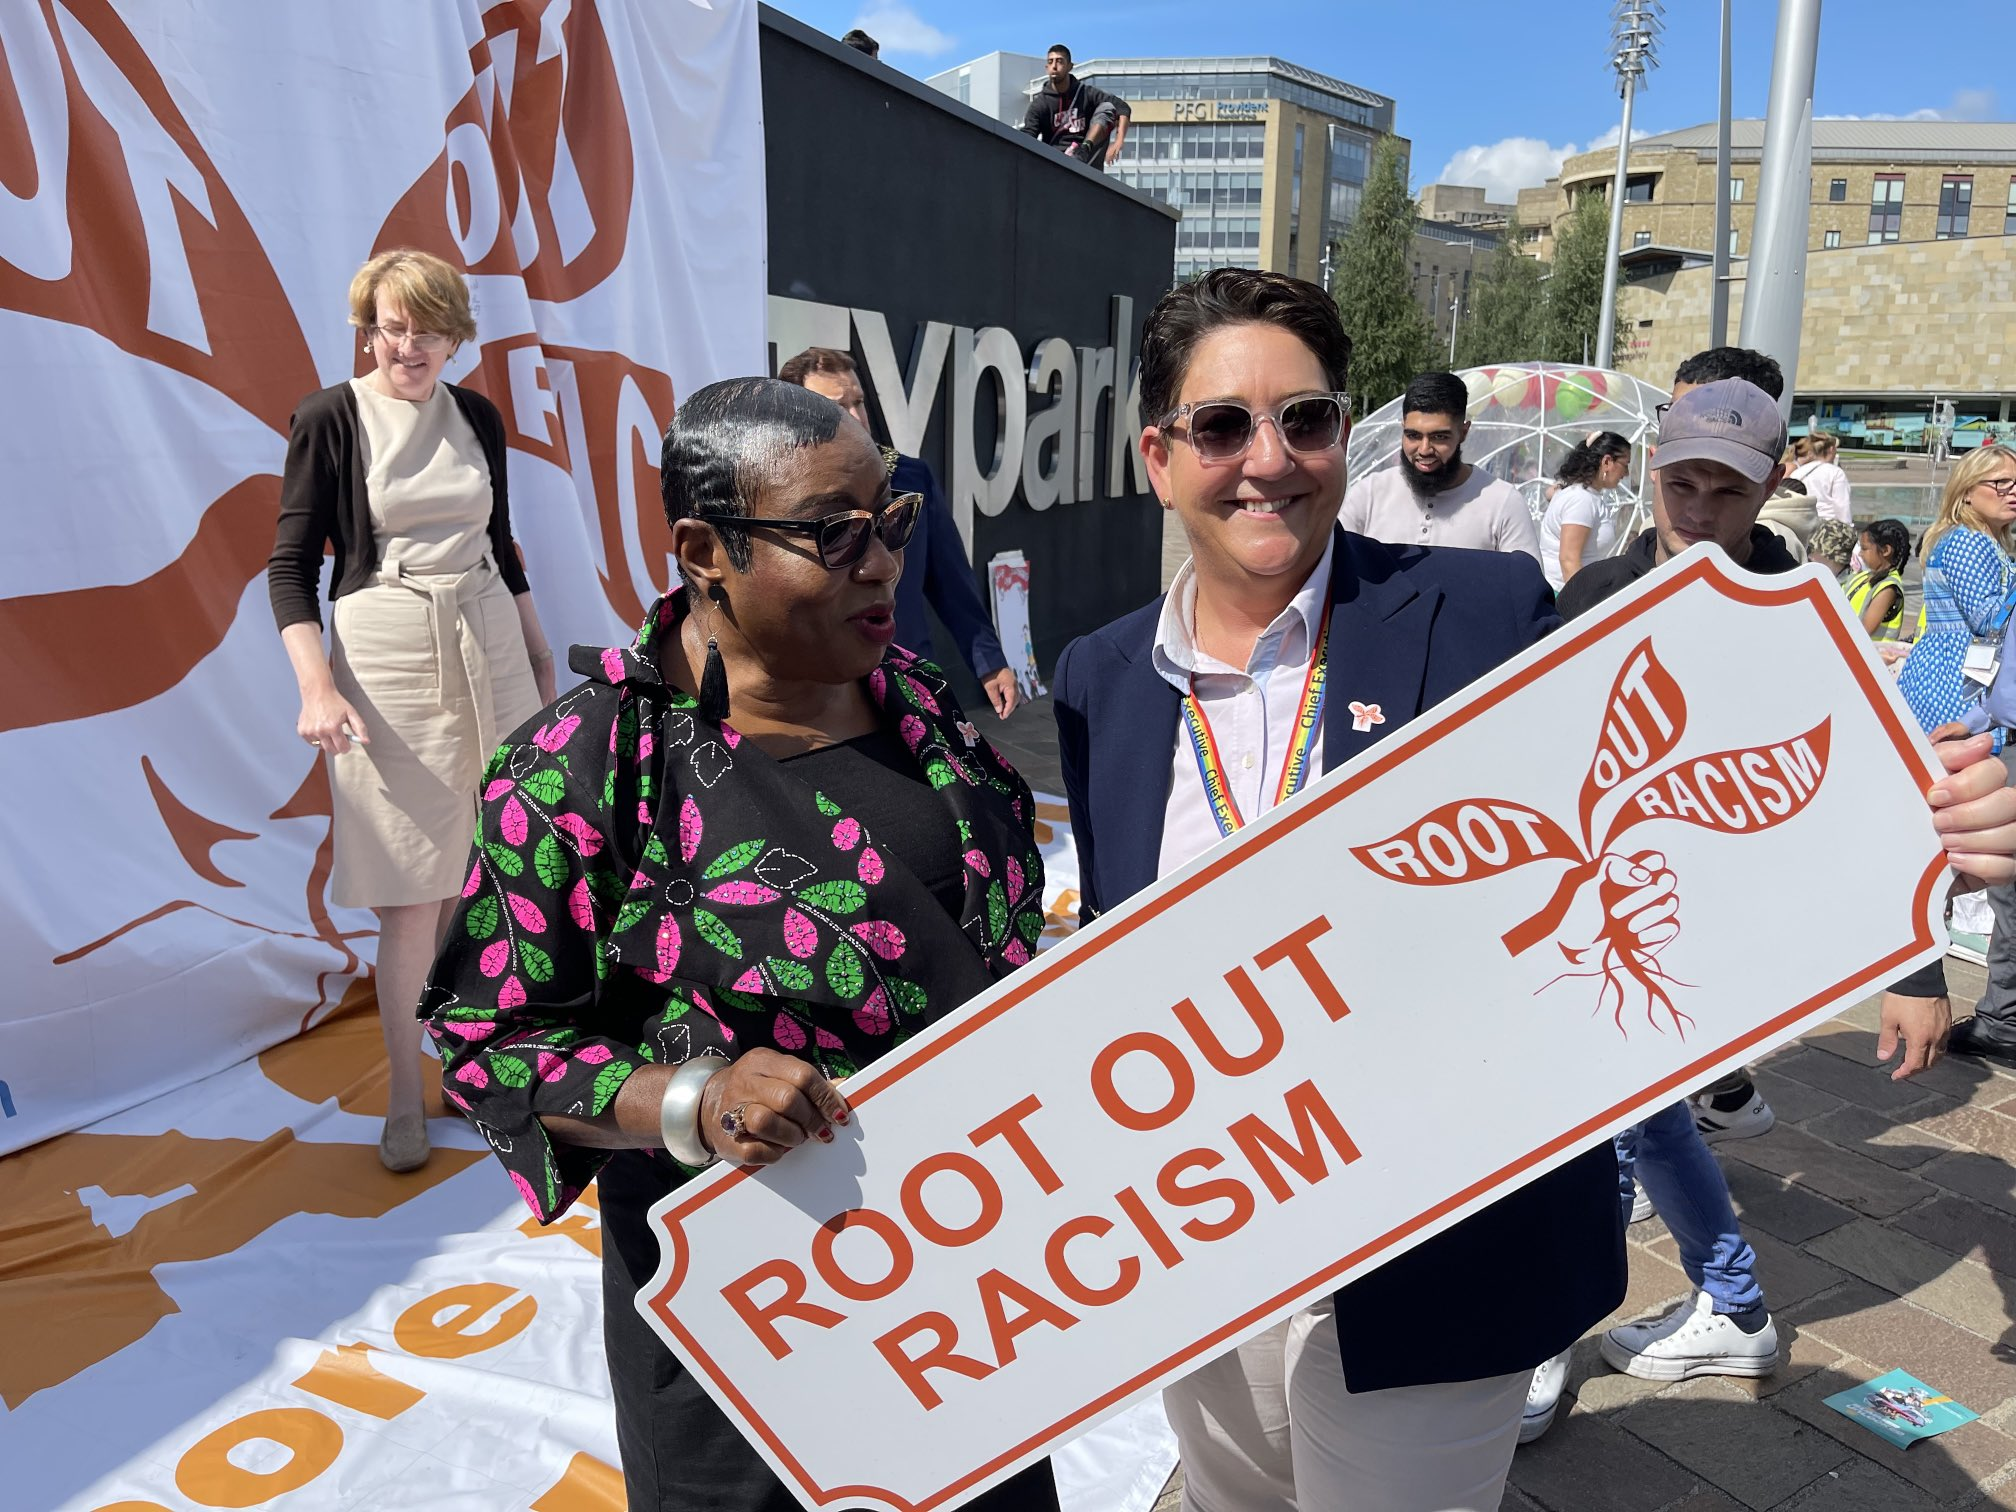 Root Out Racism Campaign in action